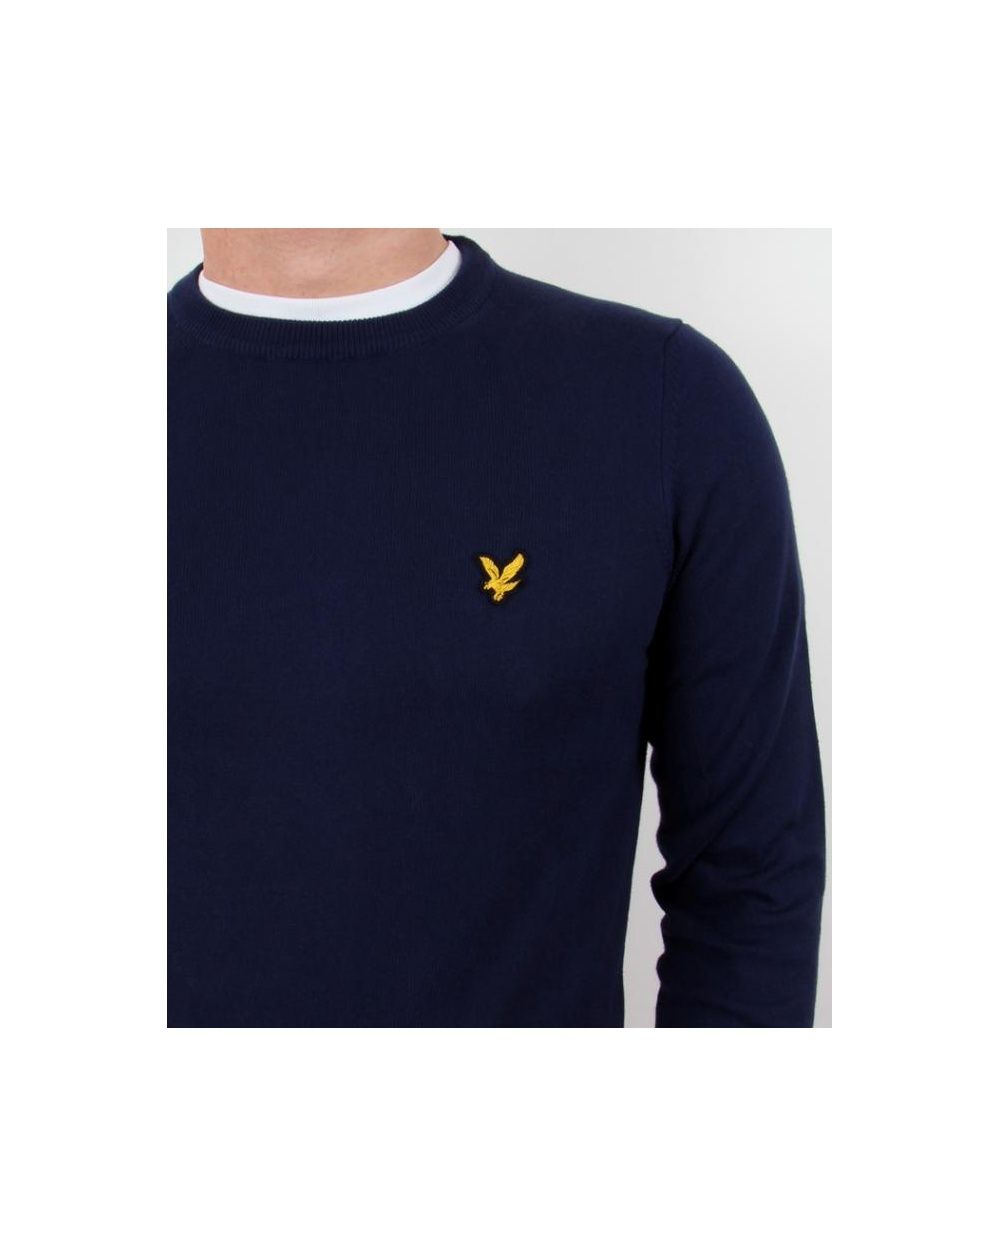 lyle and scott crew neck jumper new navy lyle and scott jumper crew neck. Black Bedroom Furniture Sets. Home Design Ideas